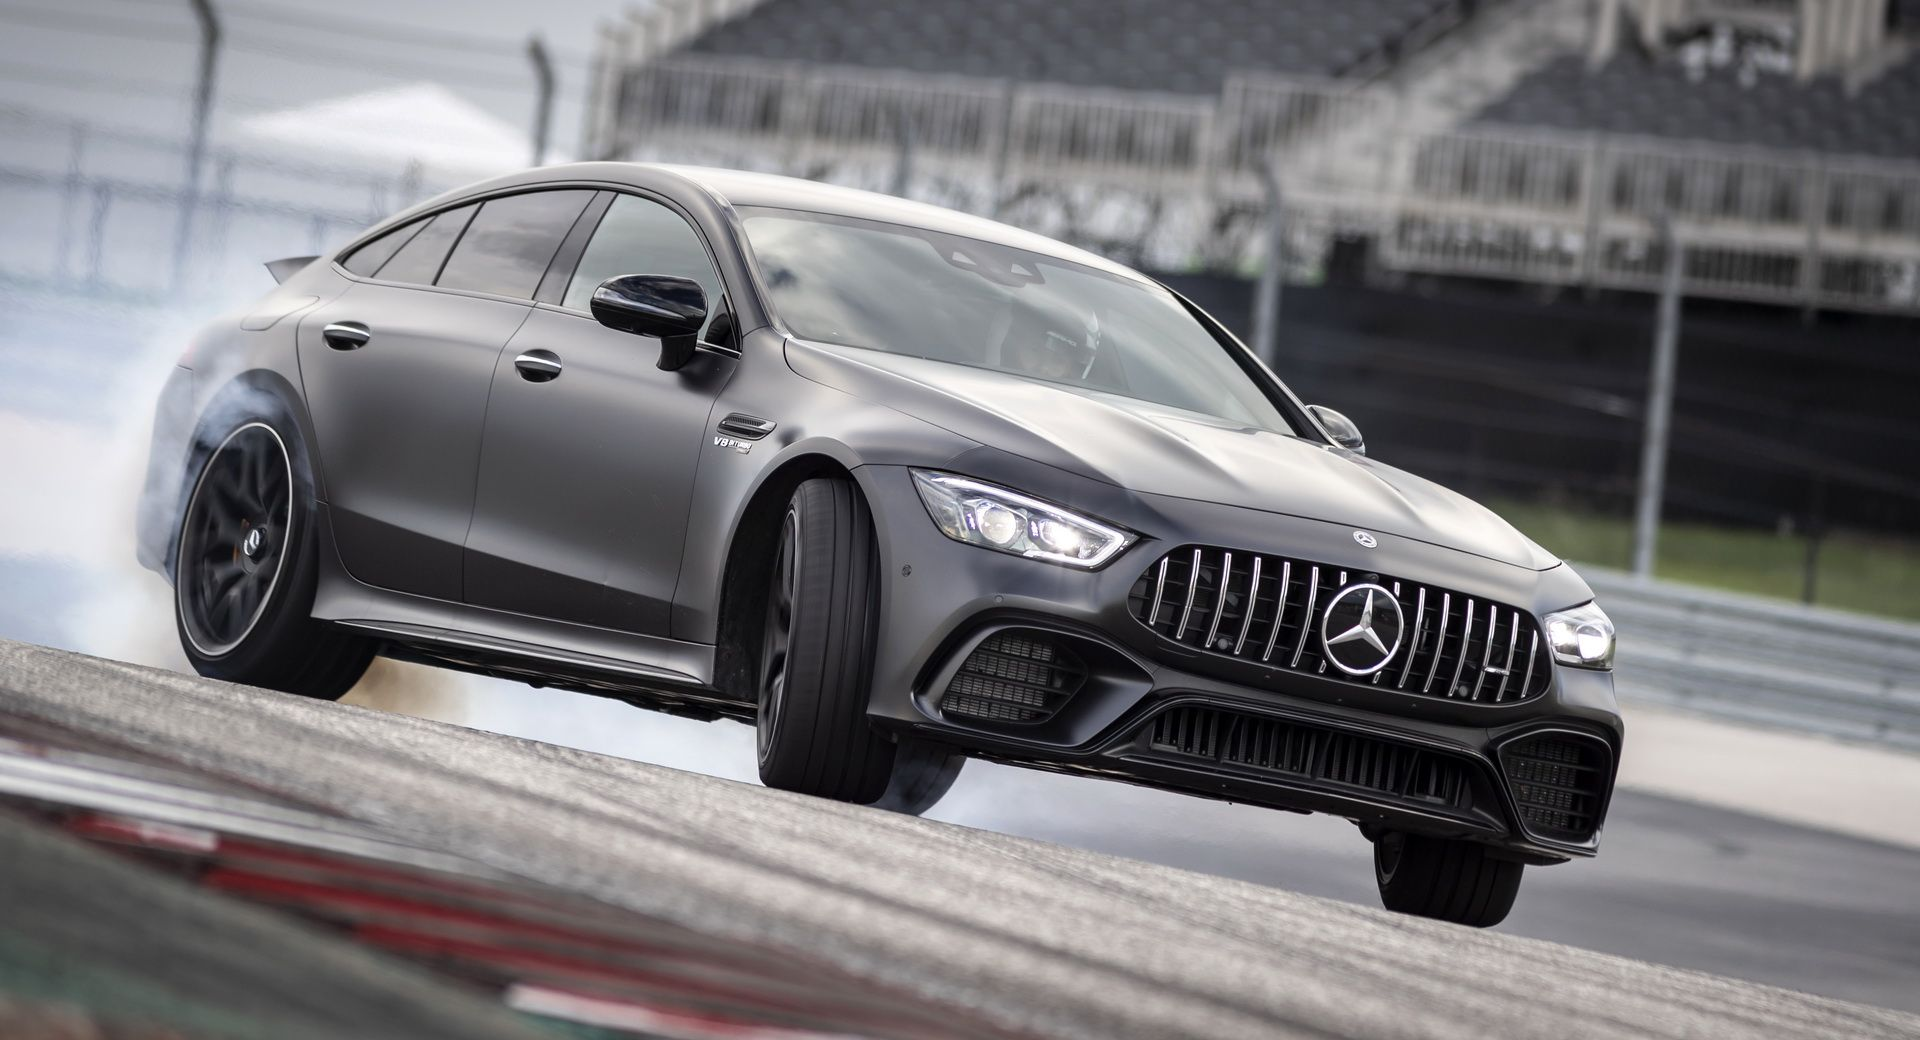 The Price Of Mercedes Amg Gt 53 4door 2019 In America Is Cheaper